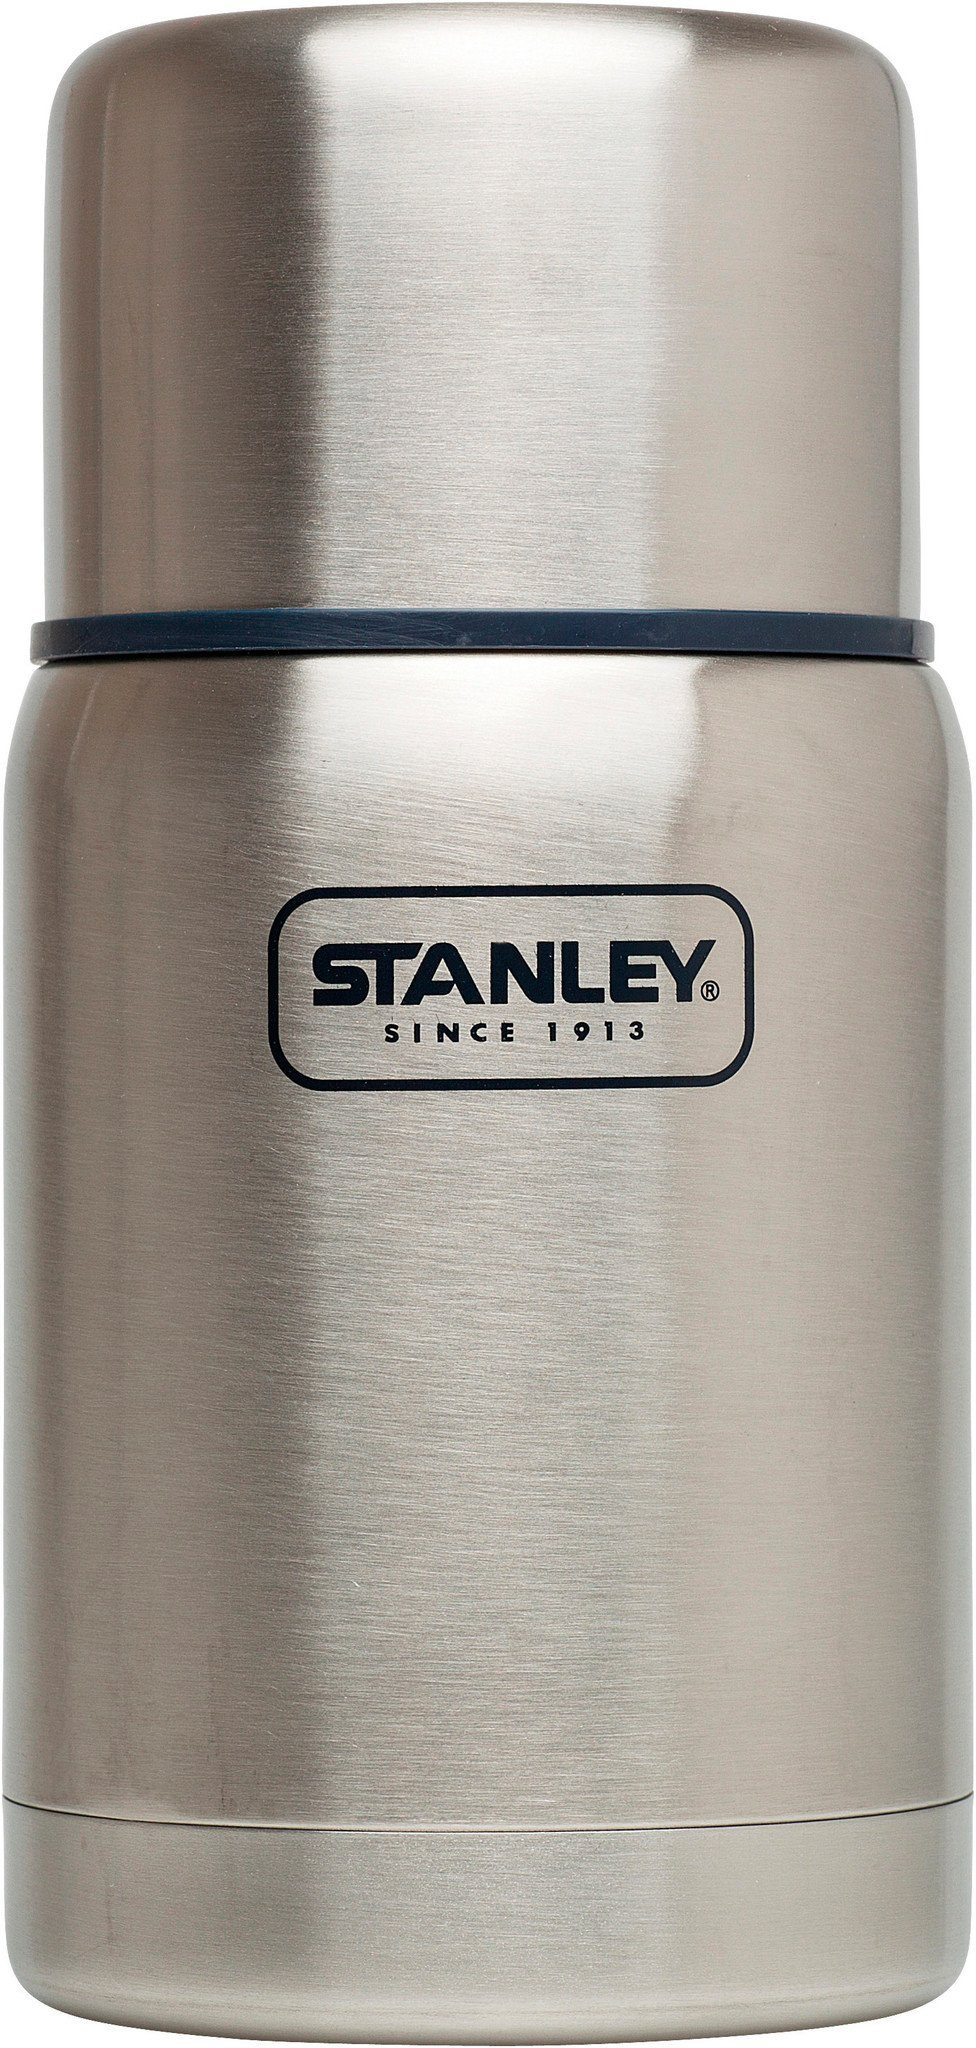 Stanley Trinkflasche »Adventure Food Jar 710ml«